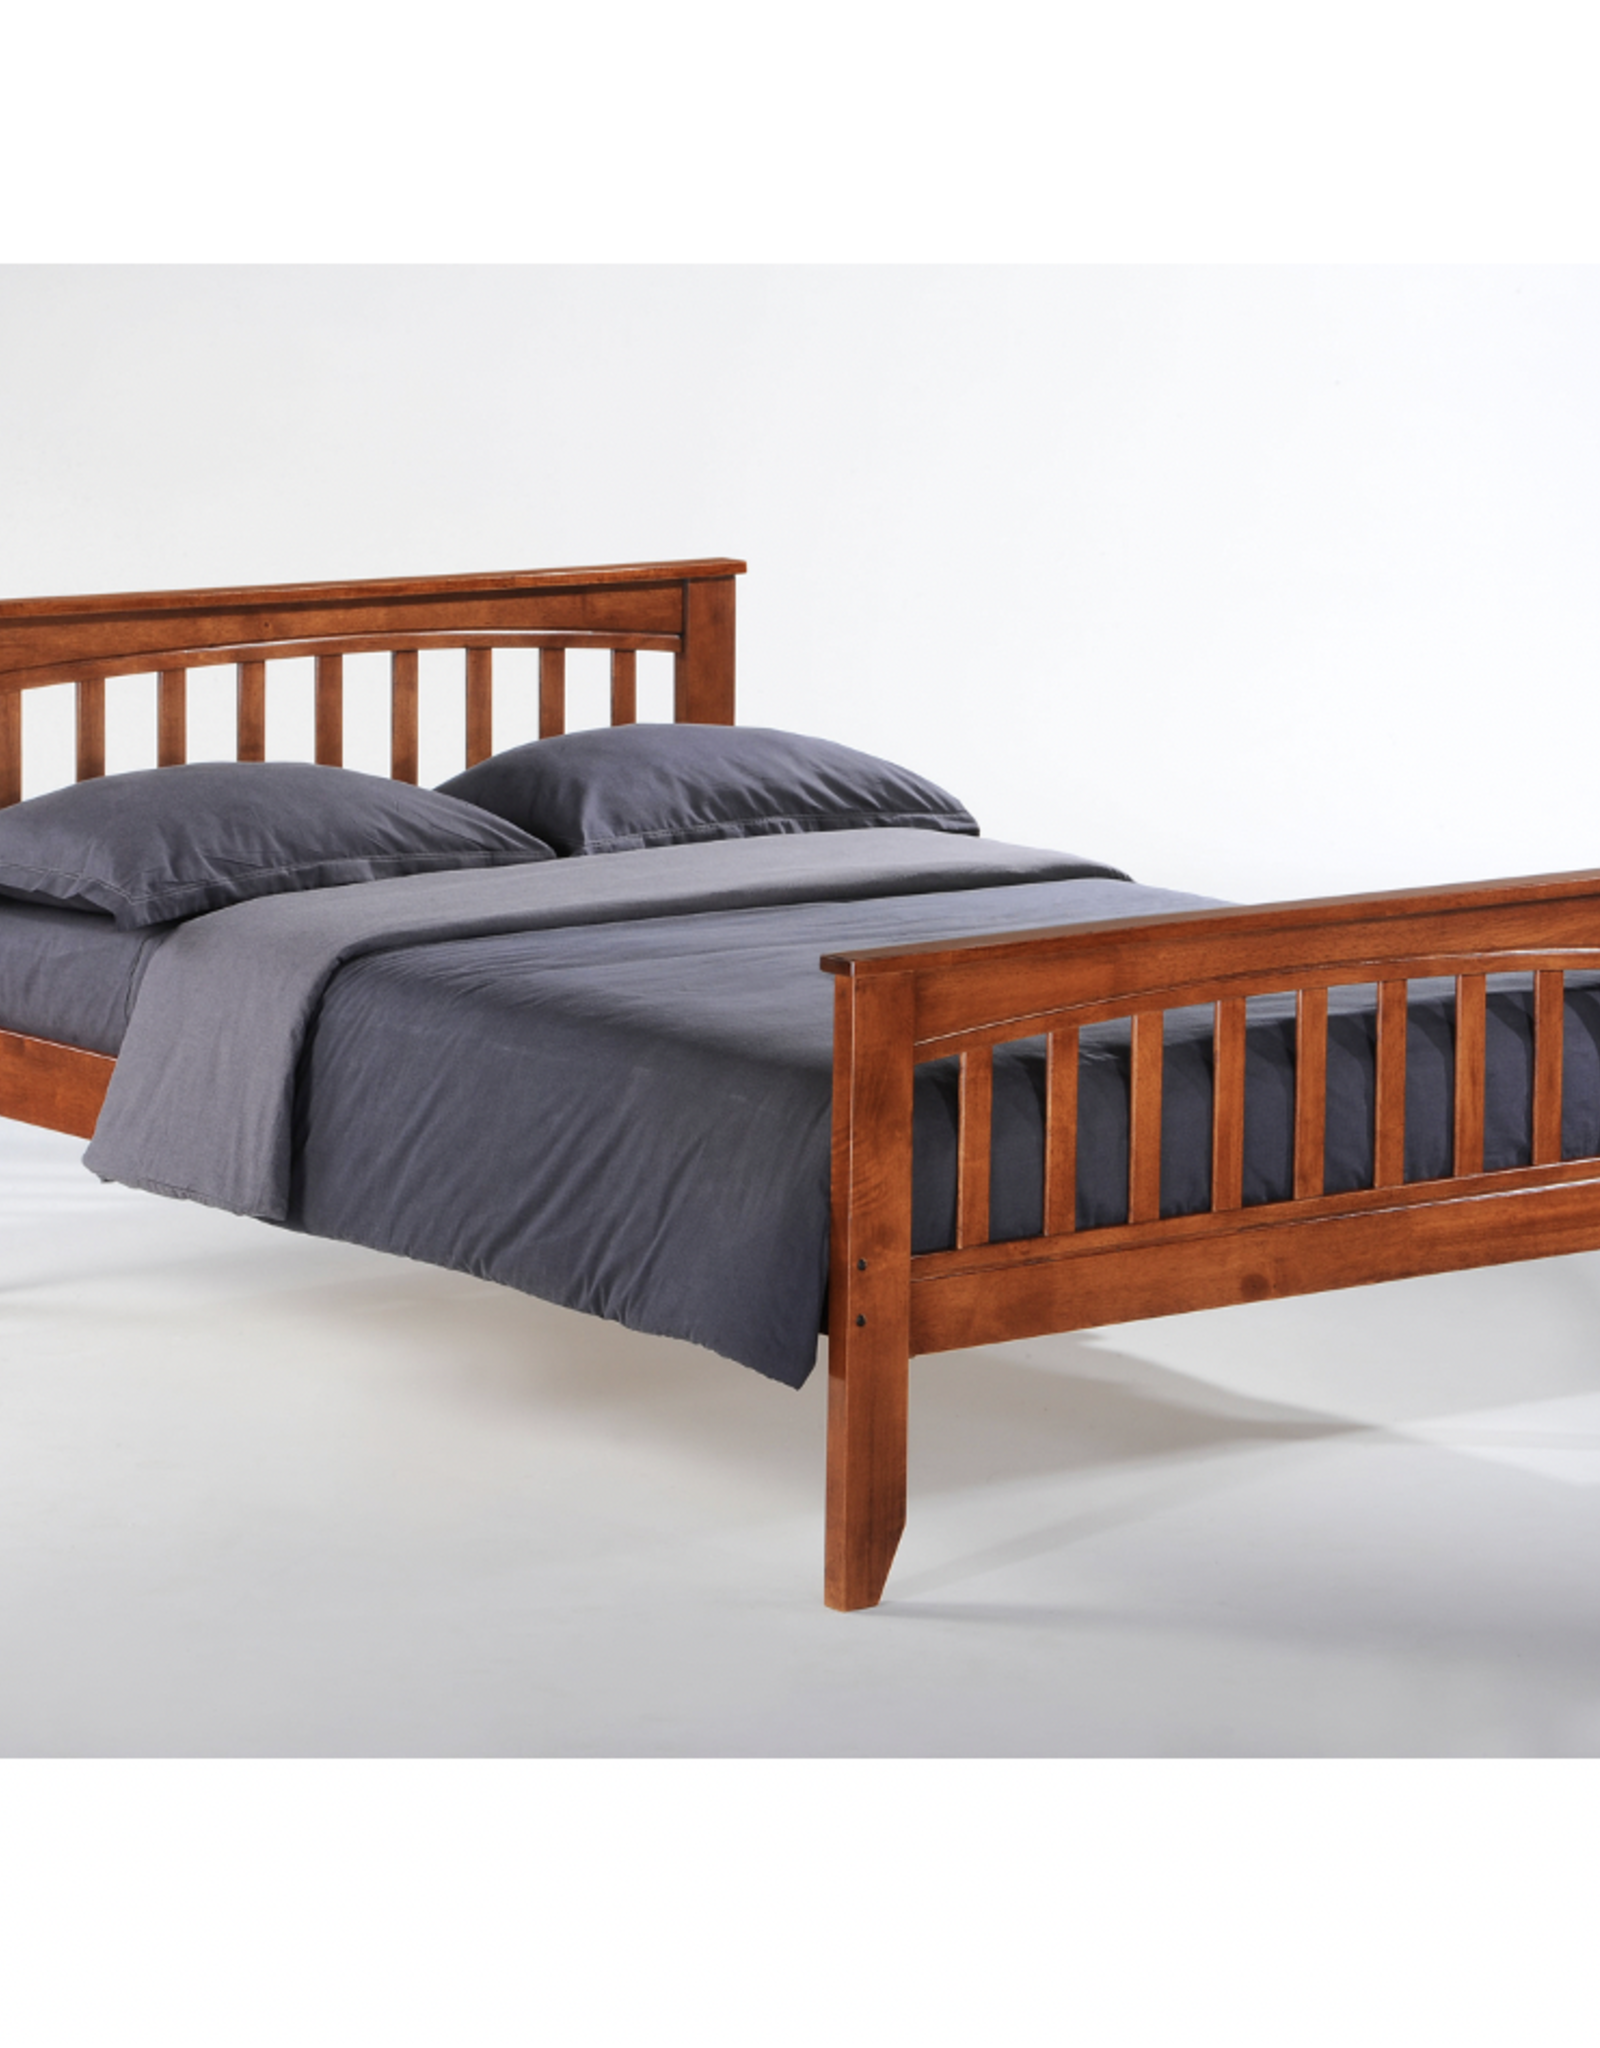 Sasparilla Platform Bed - Comes in Four Colors